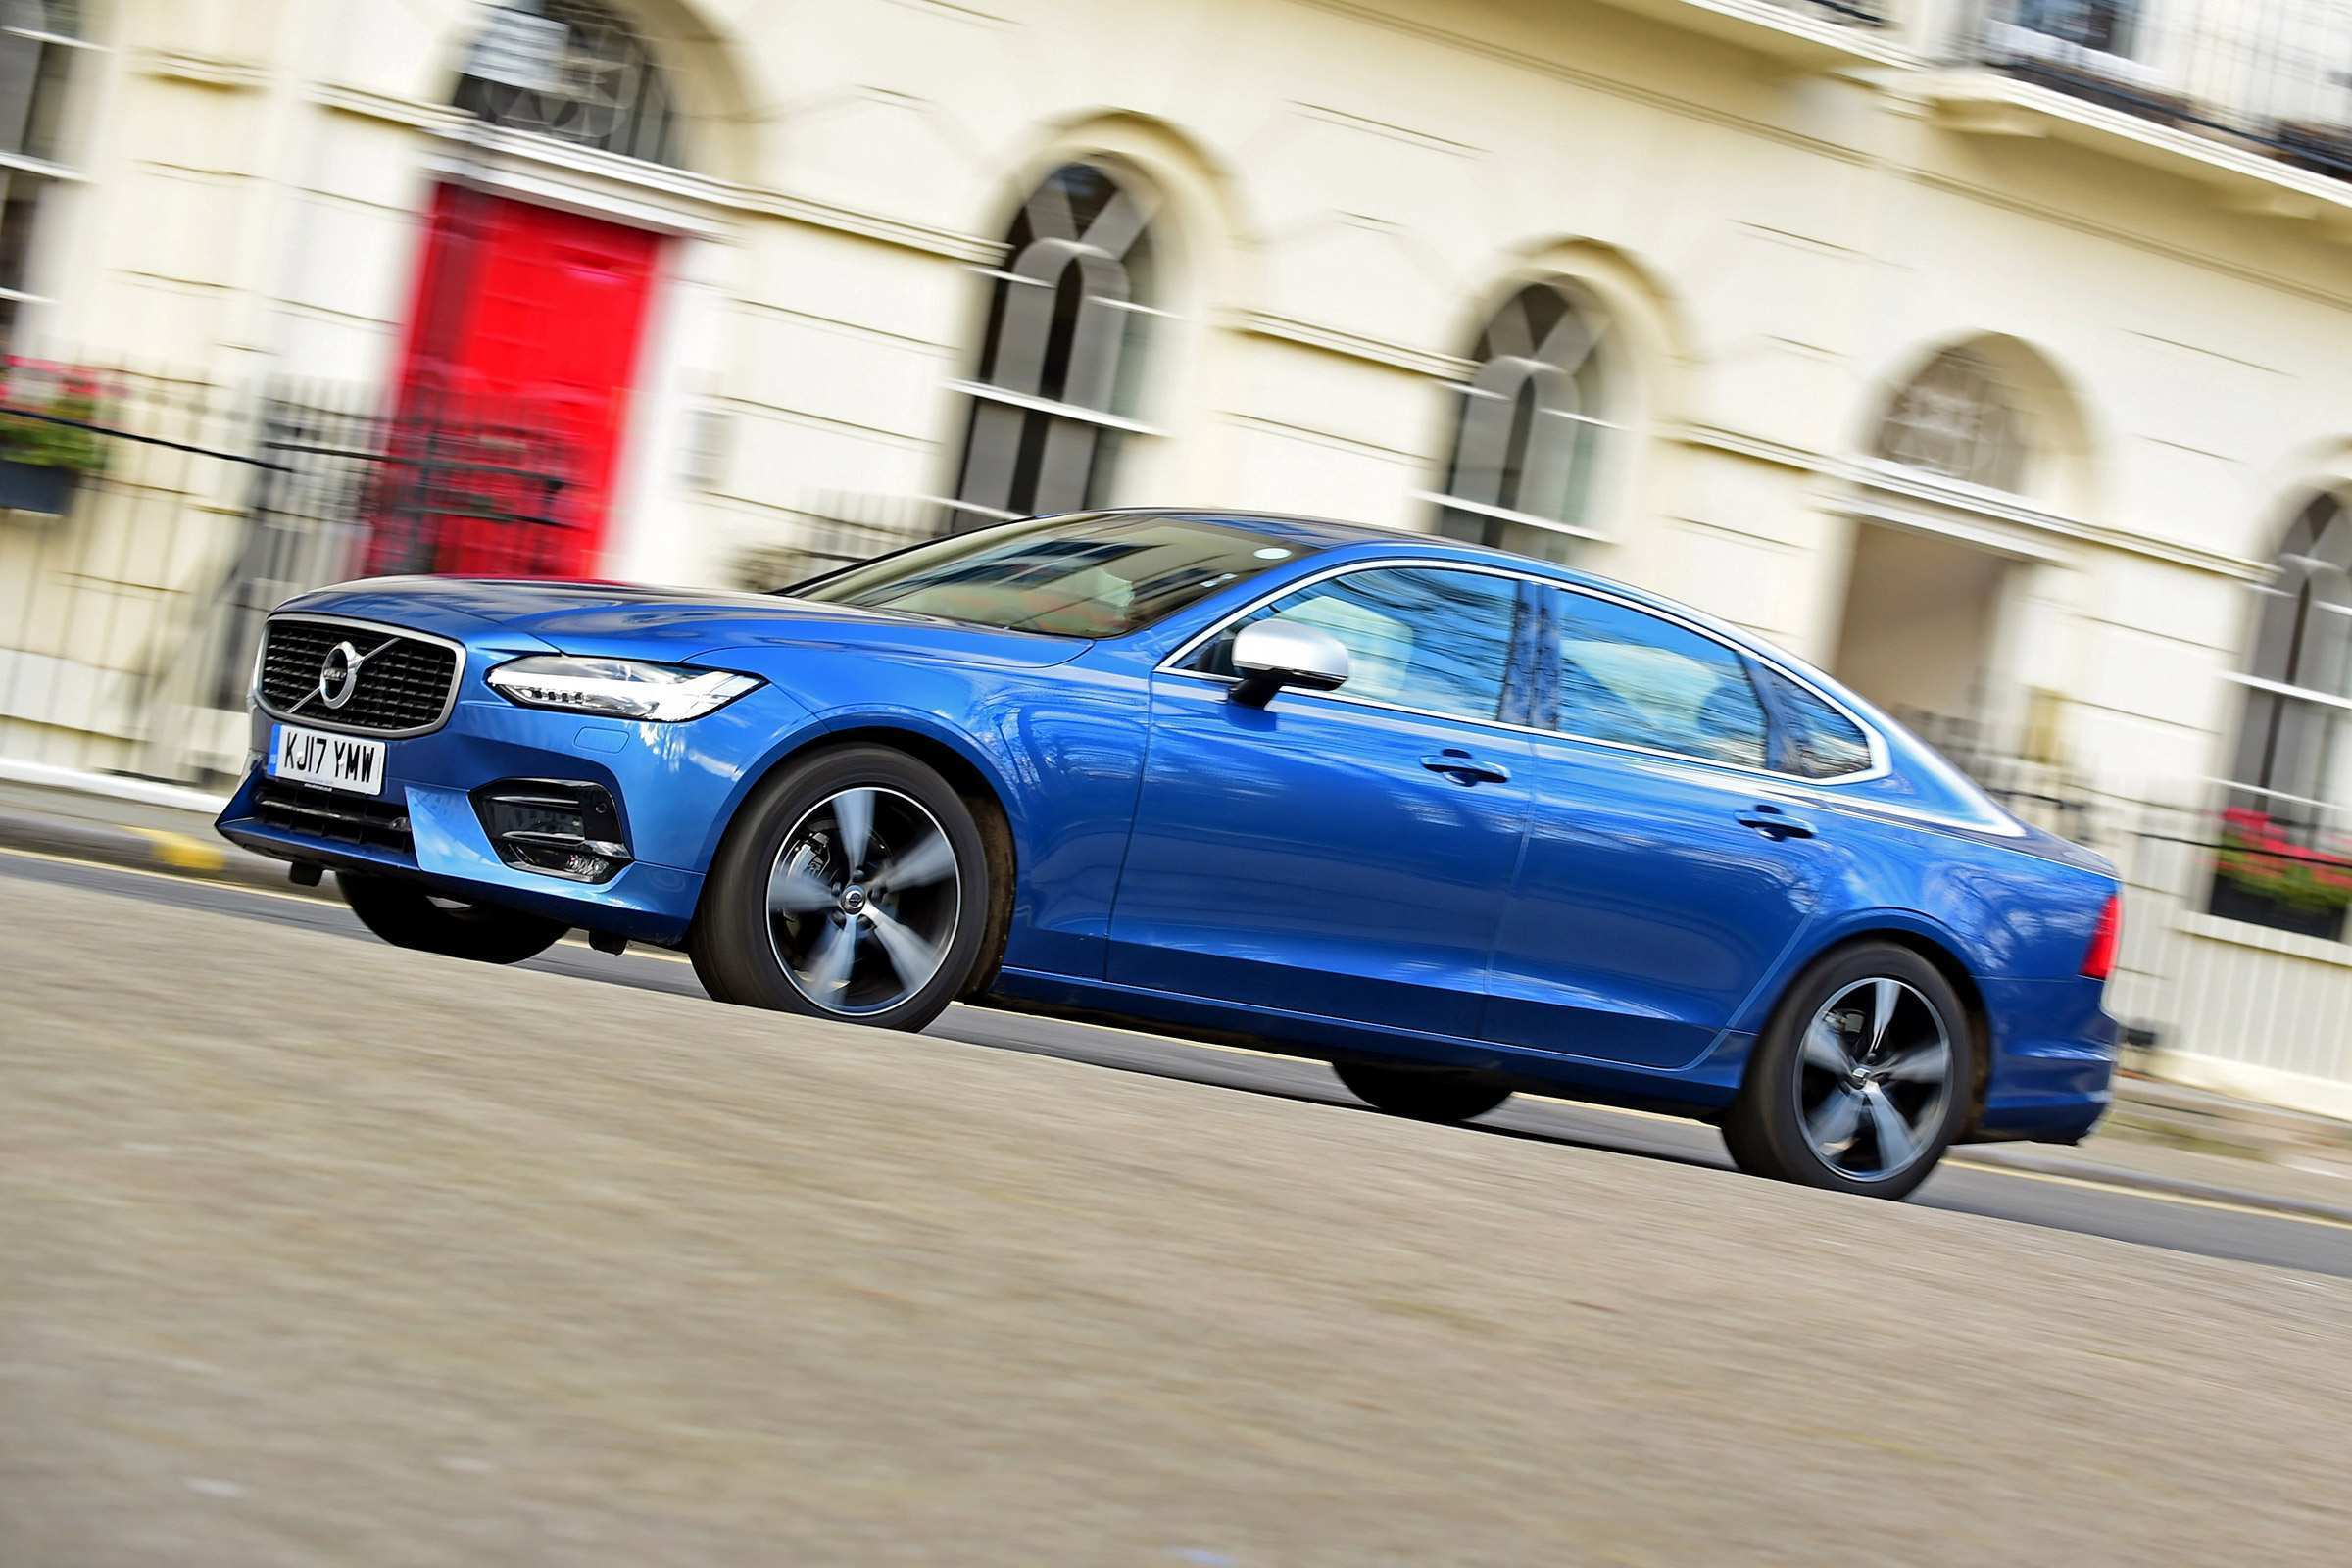 96 New The S90 Volvo 2019 Review Release Date with The S90 Volvo 2019 Review